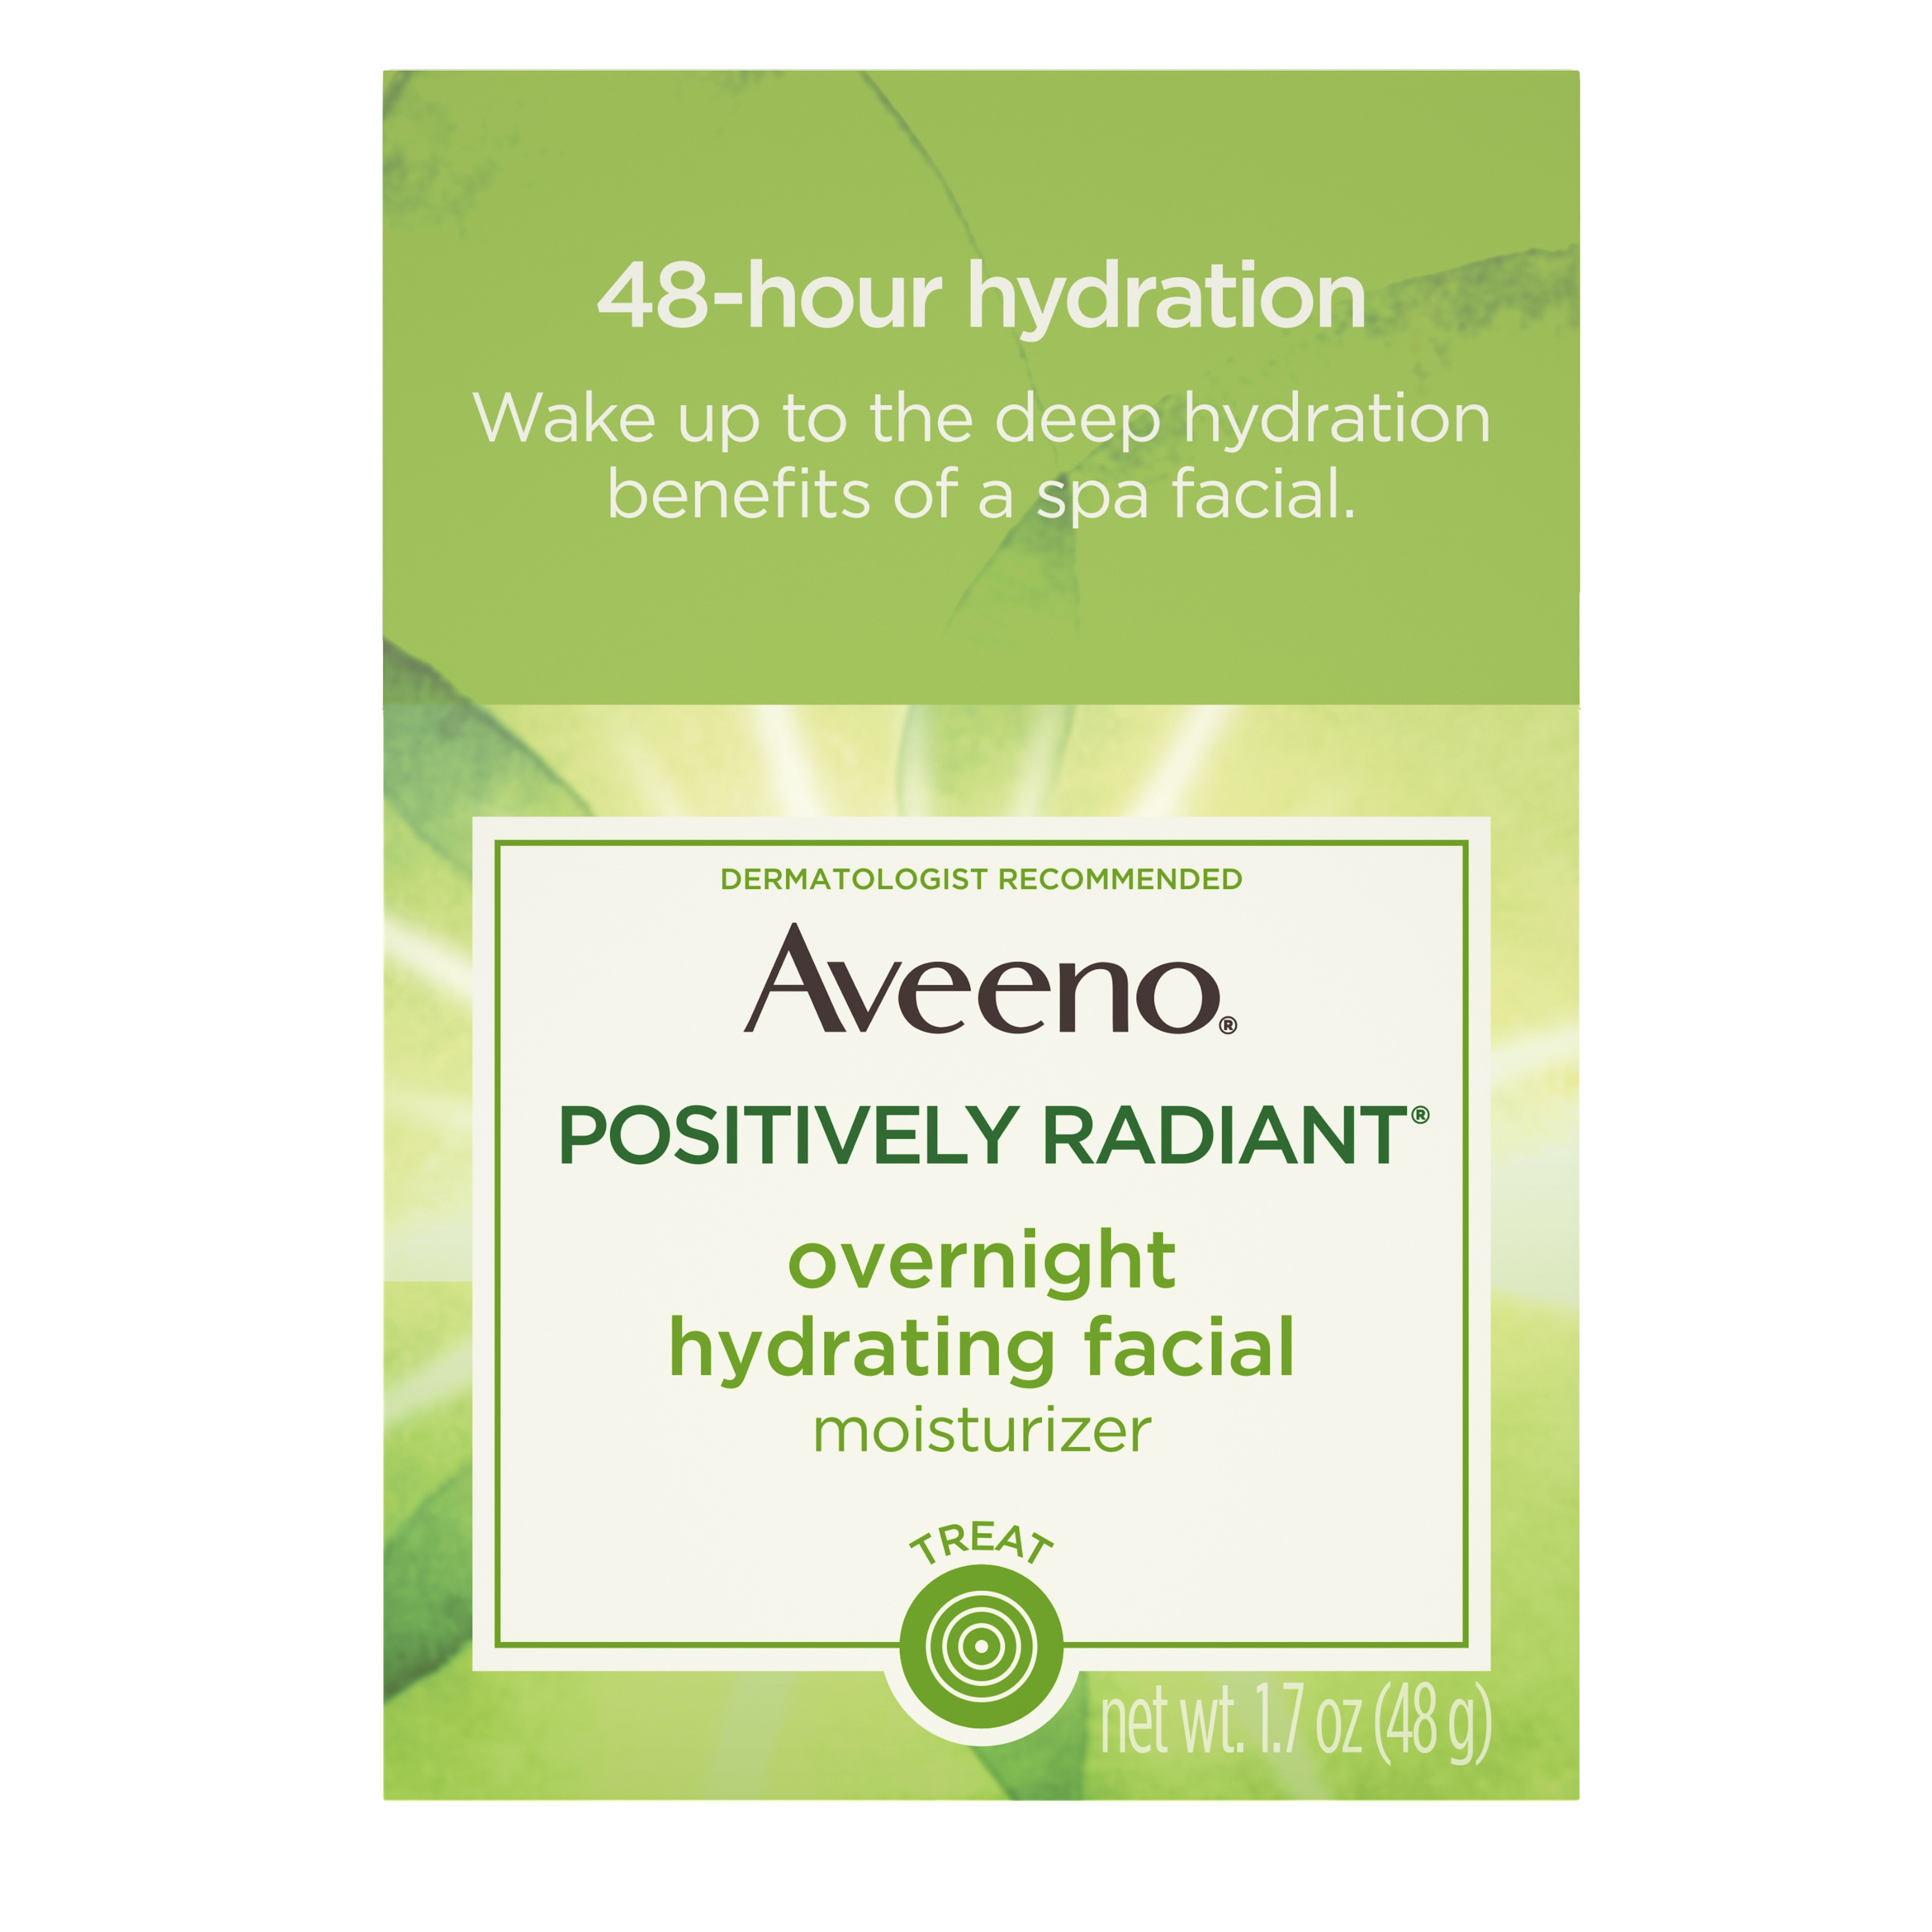 Aveeno Positively Radiant Overnight Moisturizer, Soy Extract, 1.7 oz